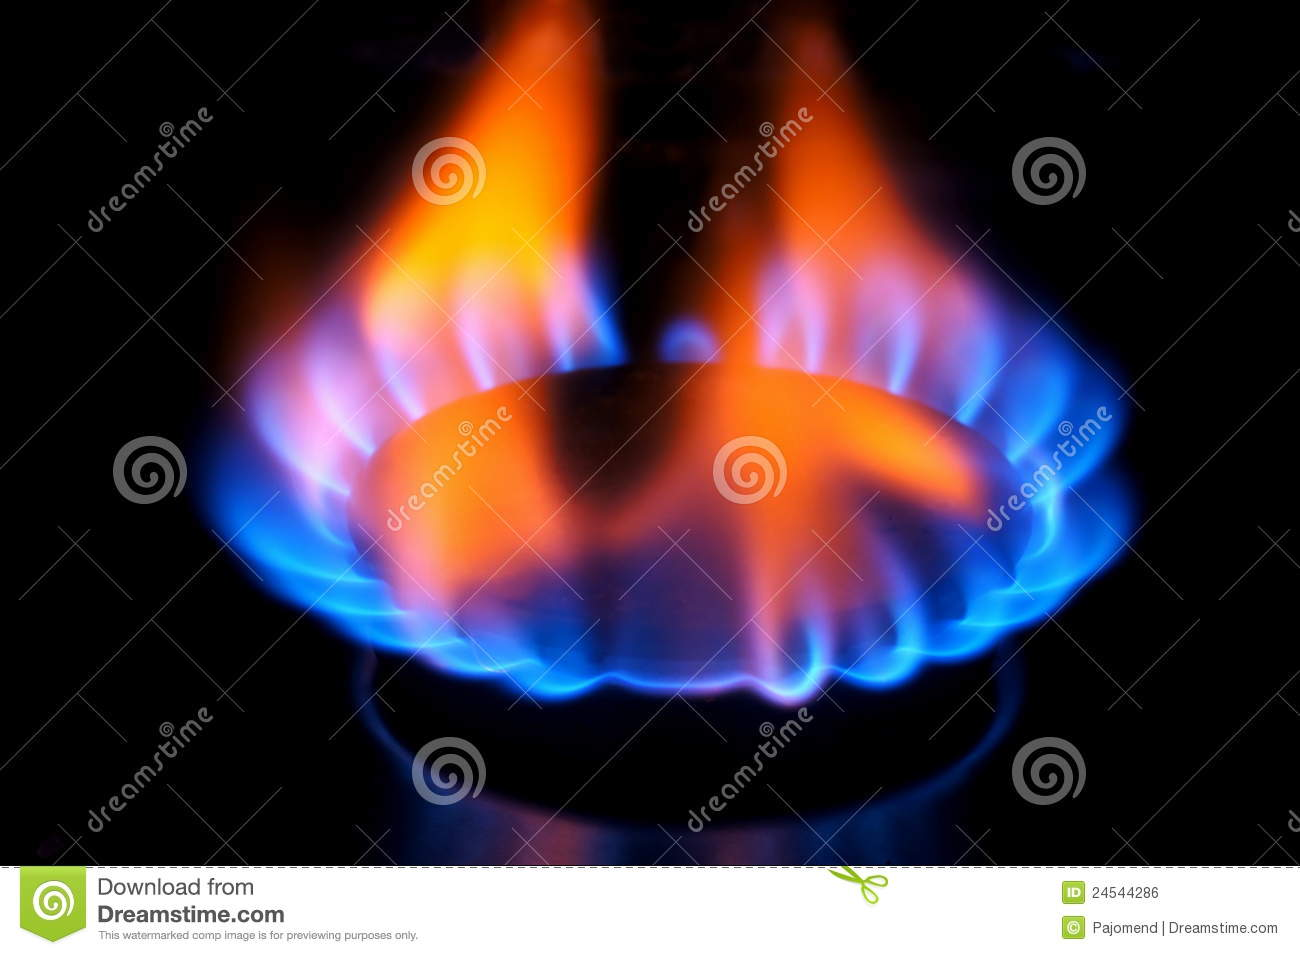 natural gas kitchen stove turquoise decor burner flame royalty free stock image - image: 24544286